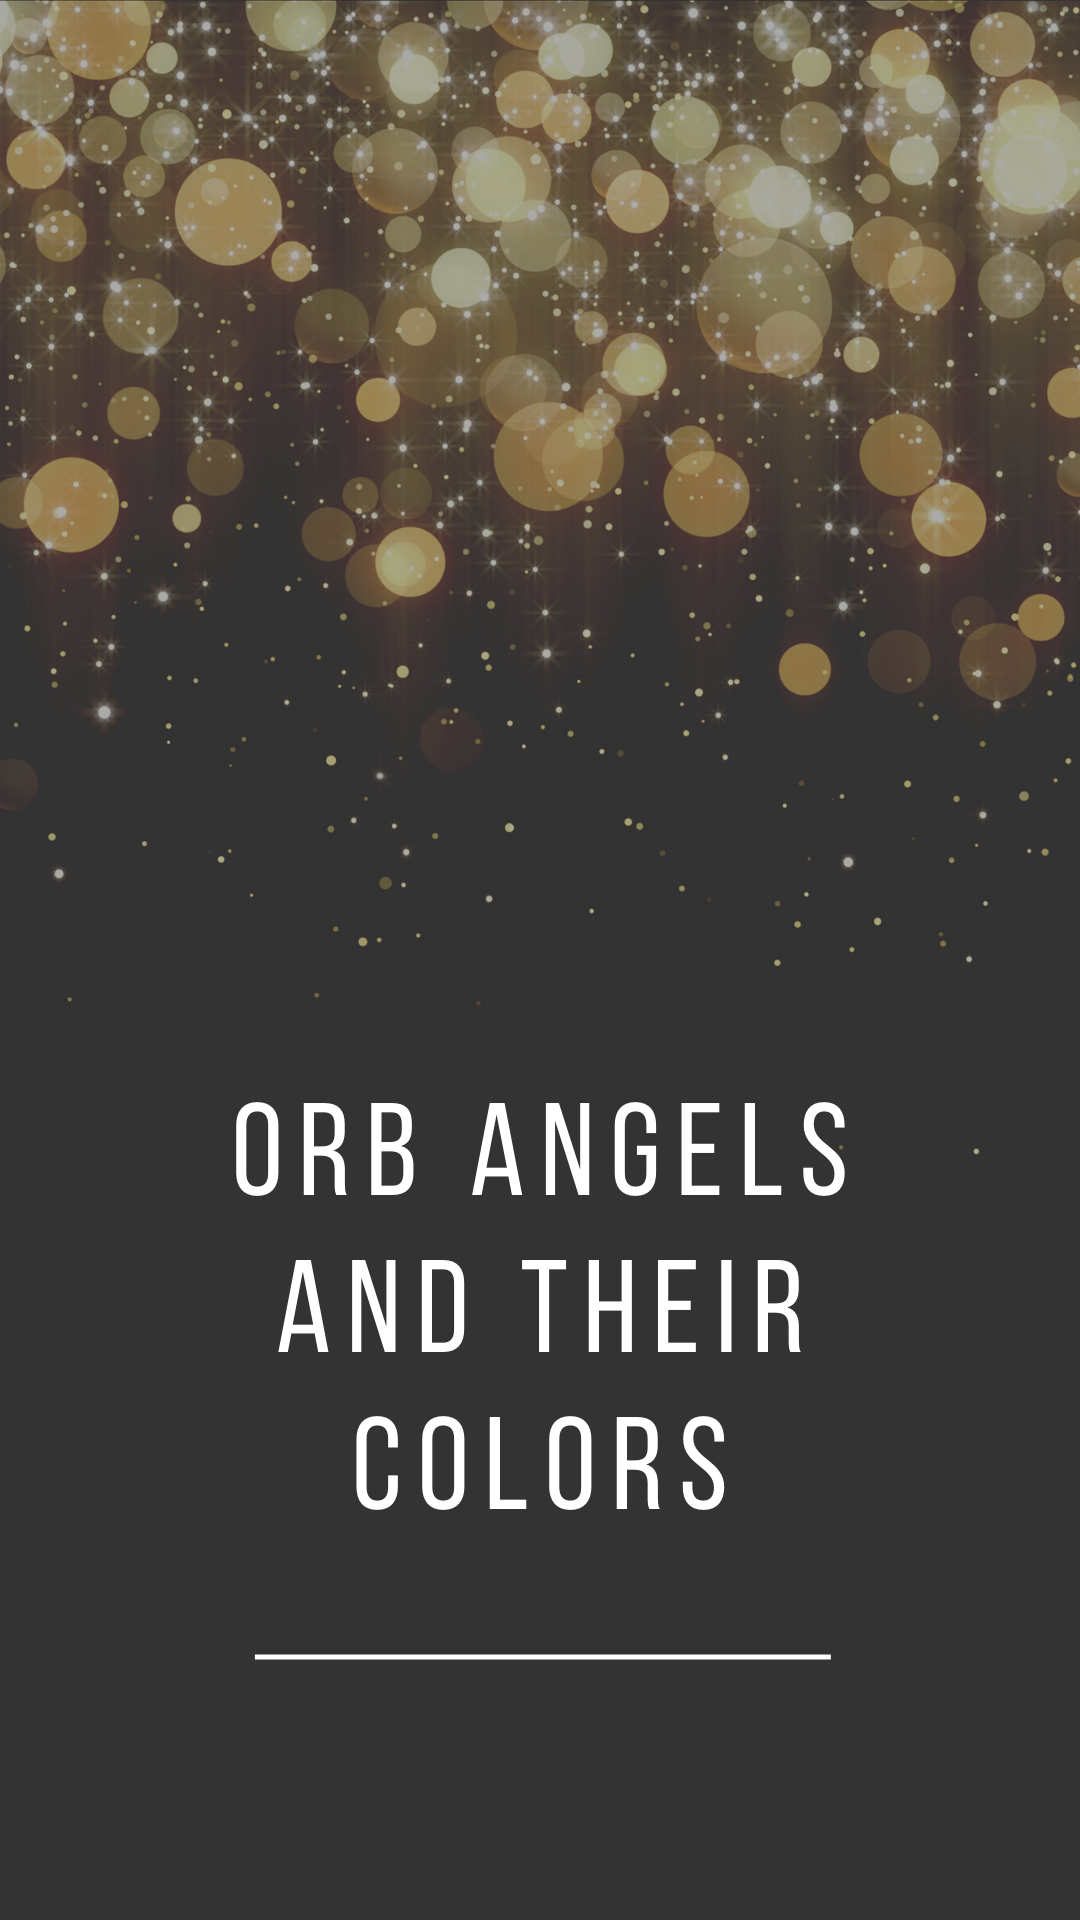 Orb Angels And Their Colors